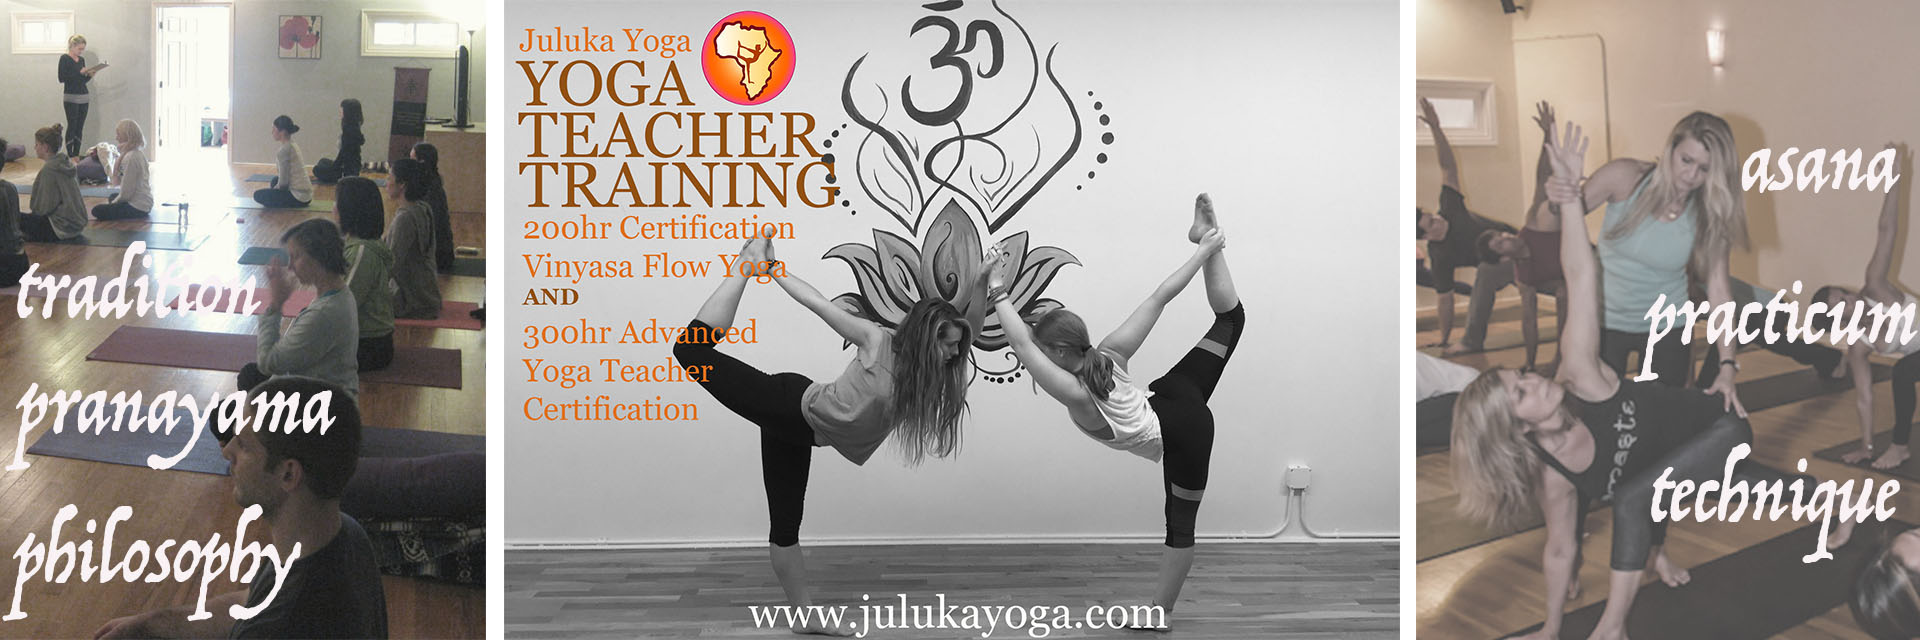 Yoga Teacher Trainer Program At Juluka Yoga Juluka Yoga Studio